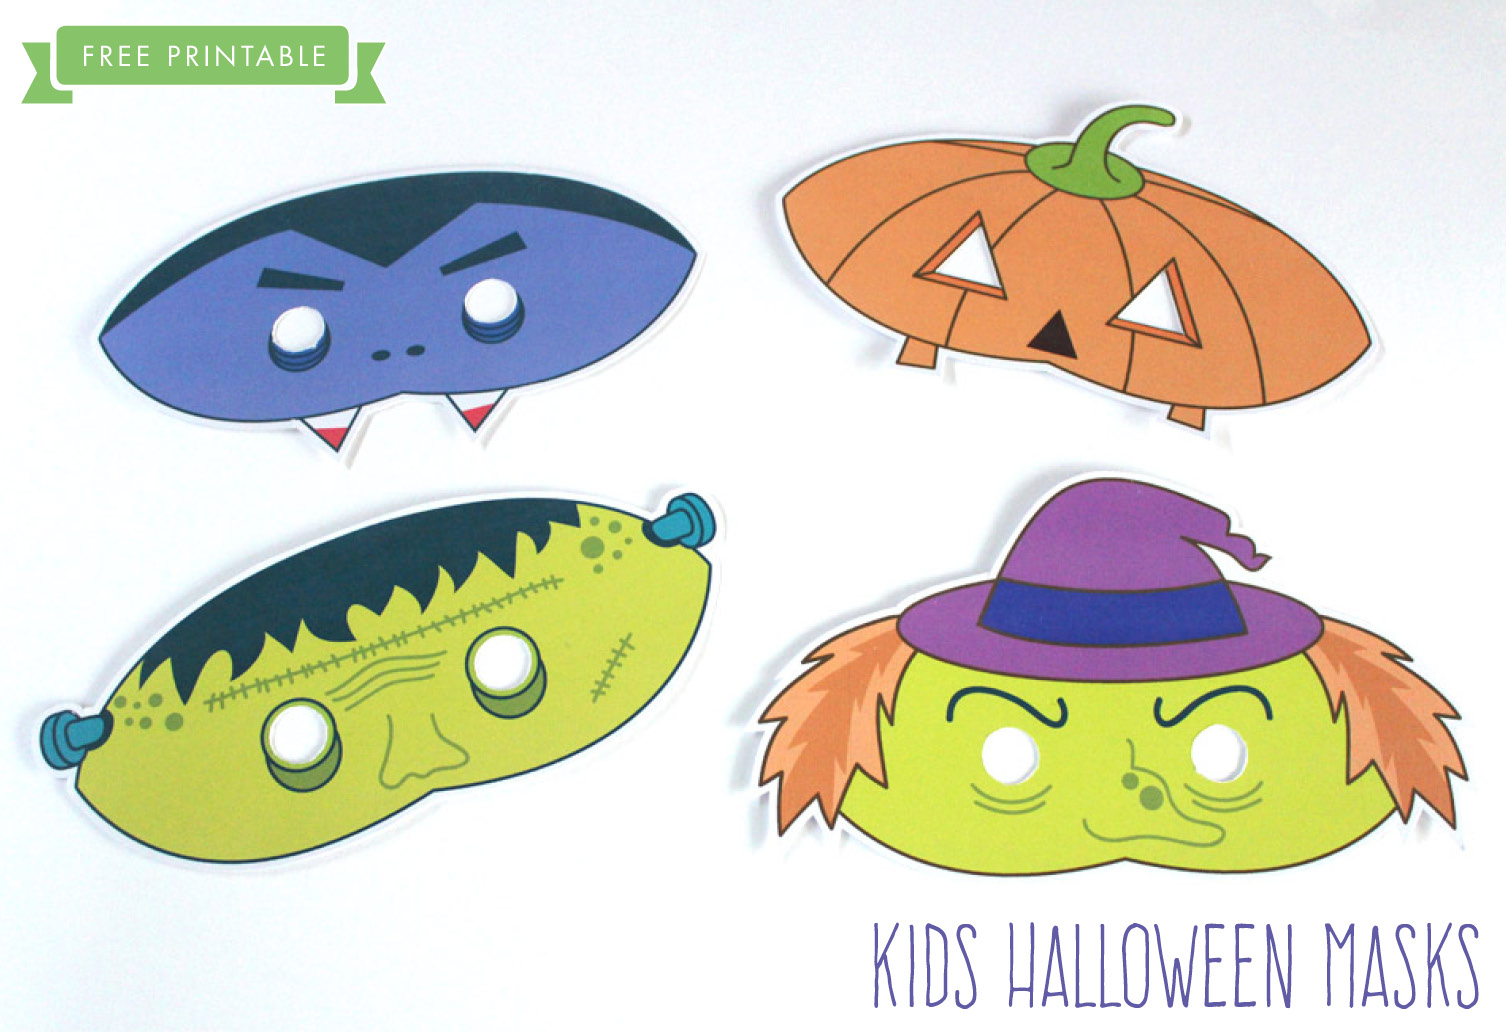 free printable halloween kids masks - Kids Halloween Masks